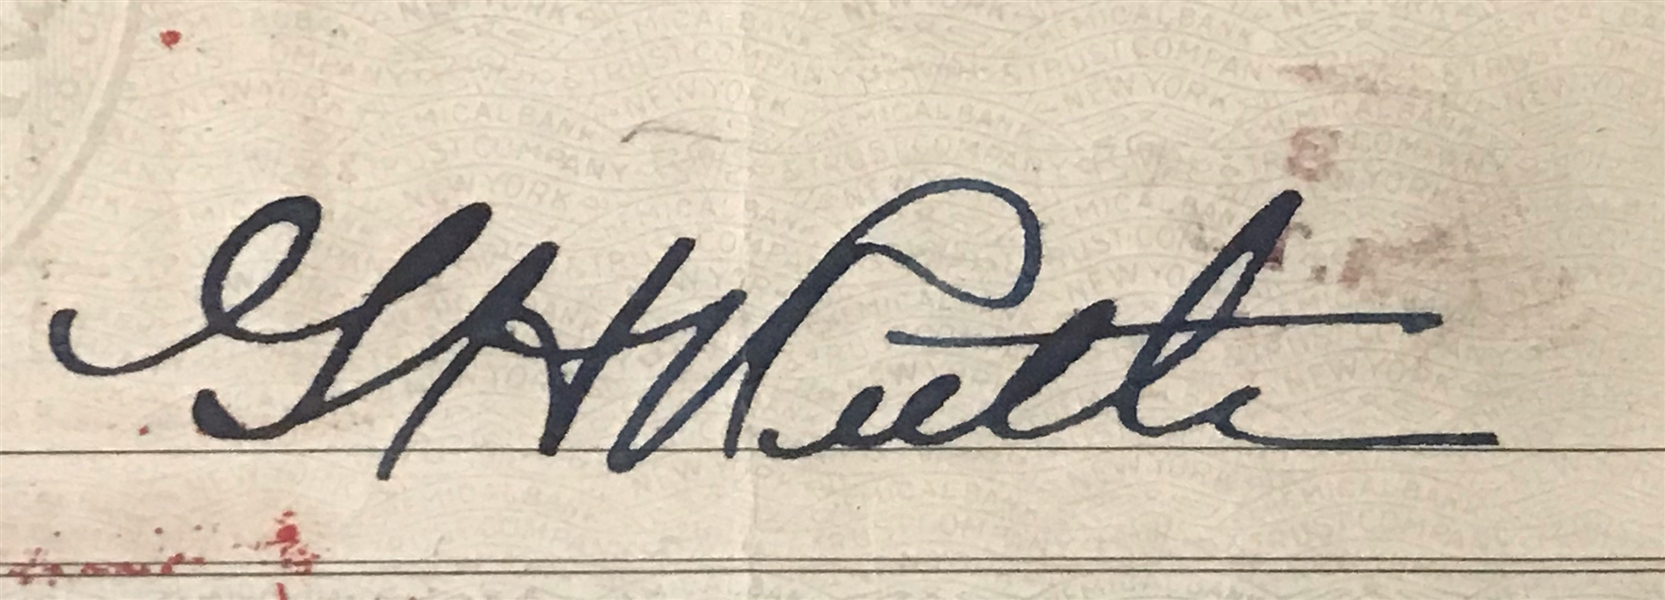 Babe Ruth Superb Handwritten & Signed Bank Check :: JSA LOA & PSA/DNA Graded GEM MINT 10 Autograph!